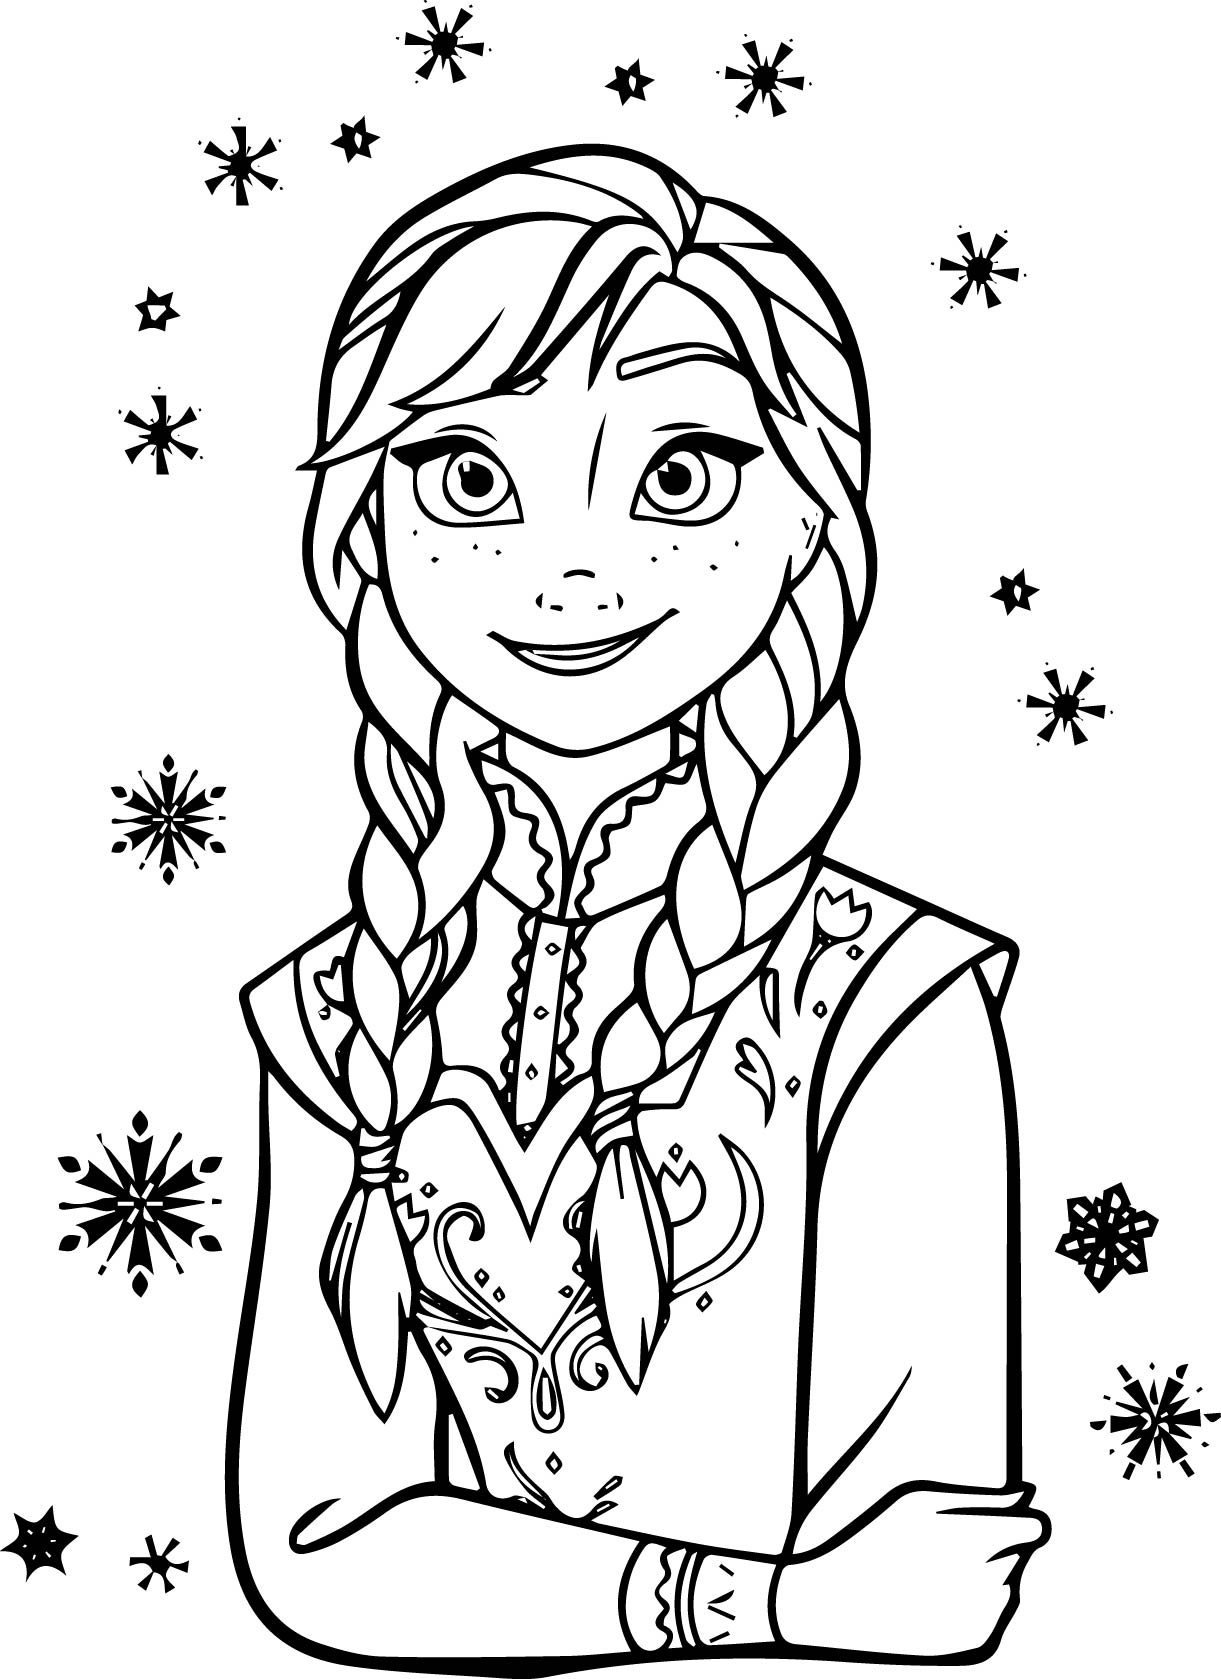 Anna Listen Coloring Page Wecoloringpage